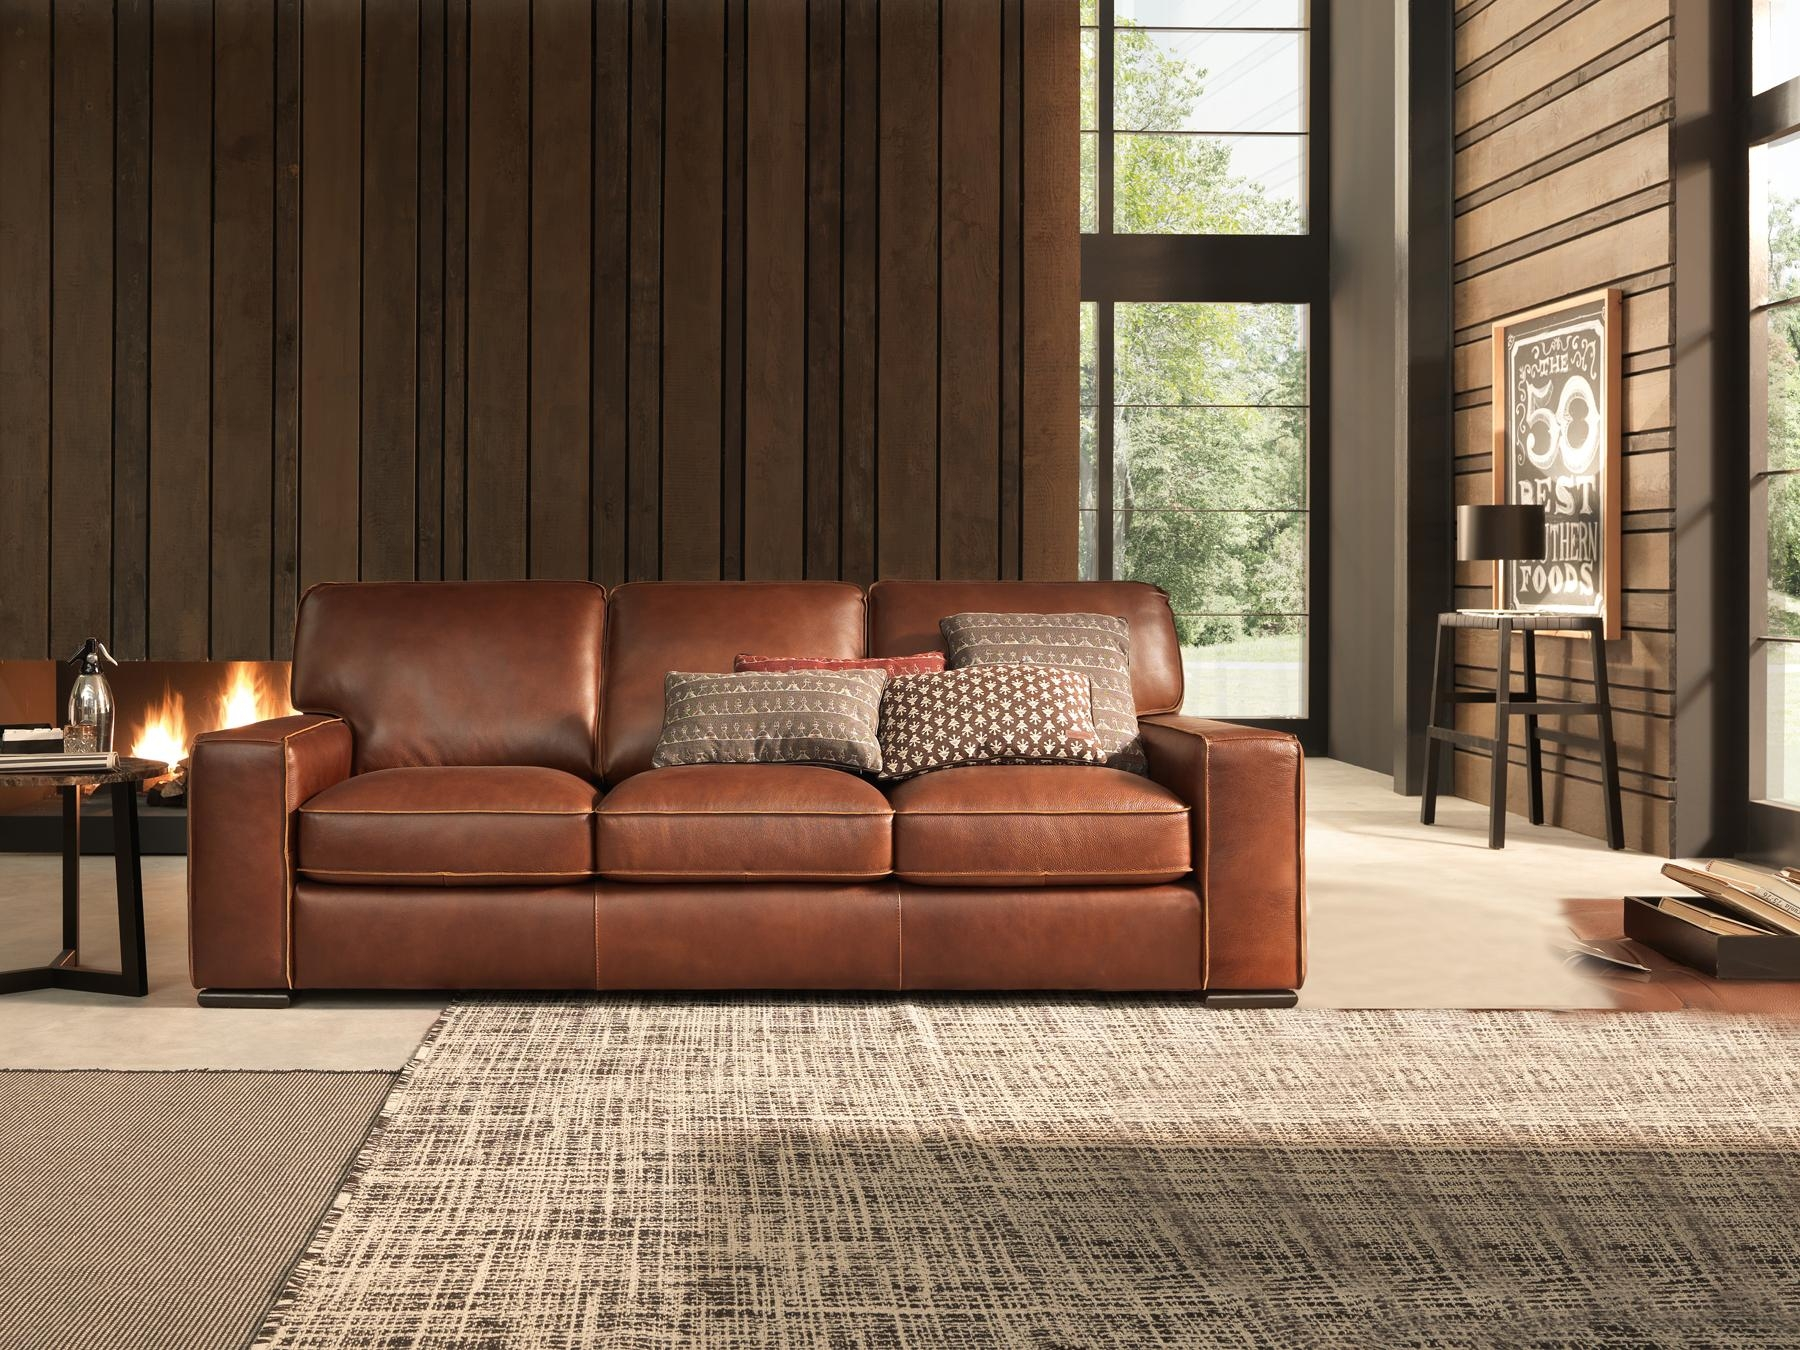 Leather Sofa Furniture Guide – How To Avoid Common Mistakes Inside European Leather Sofas (Image 12 of 21)